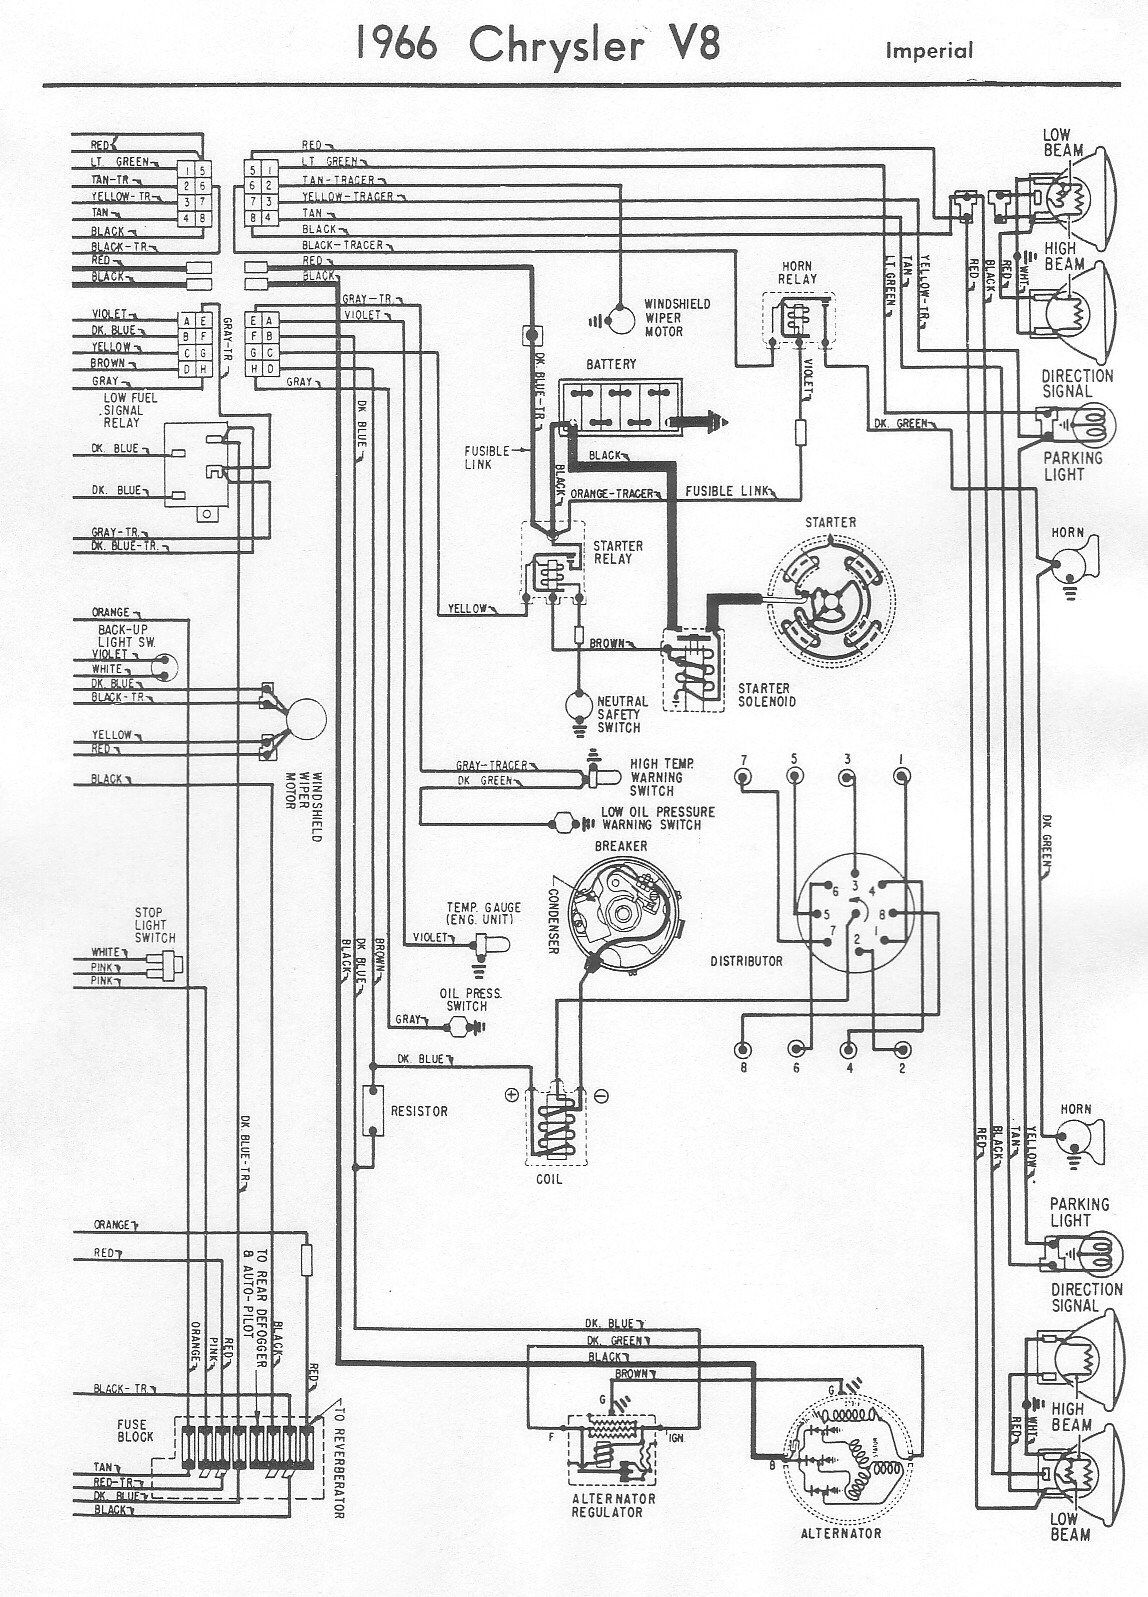 2007 f150 trailer brake wiring diagram bluebird wiring diagrams headlight switch wiring library 2007 thomas c2 brake wiring diagram